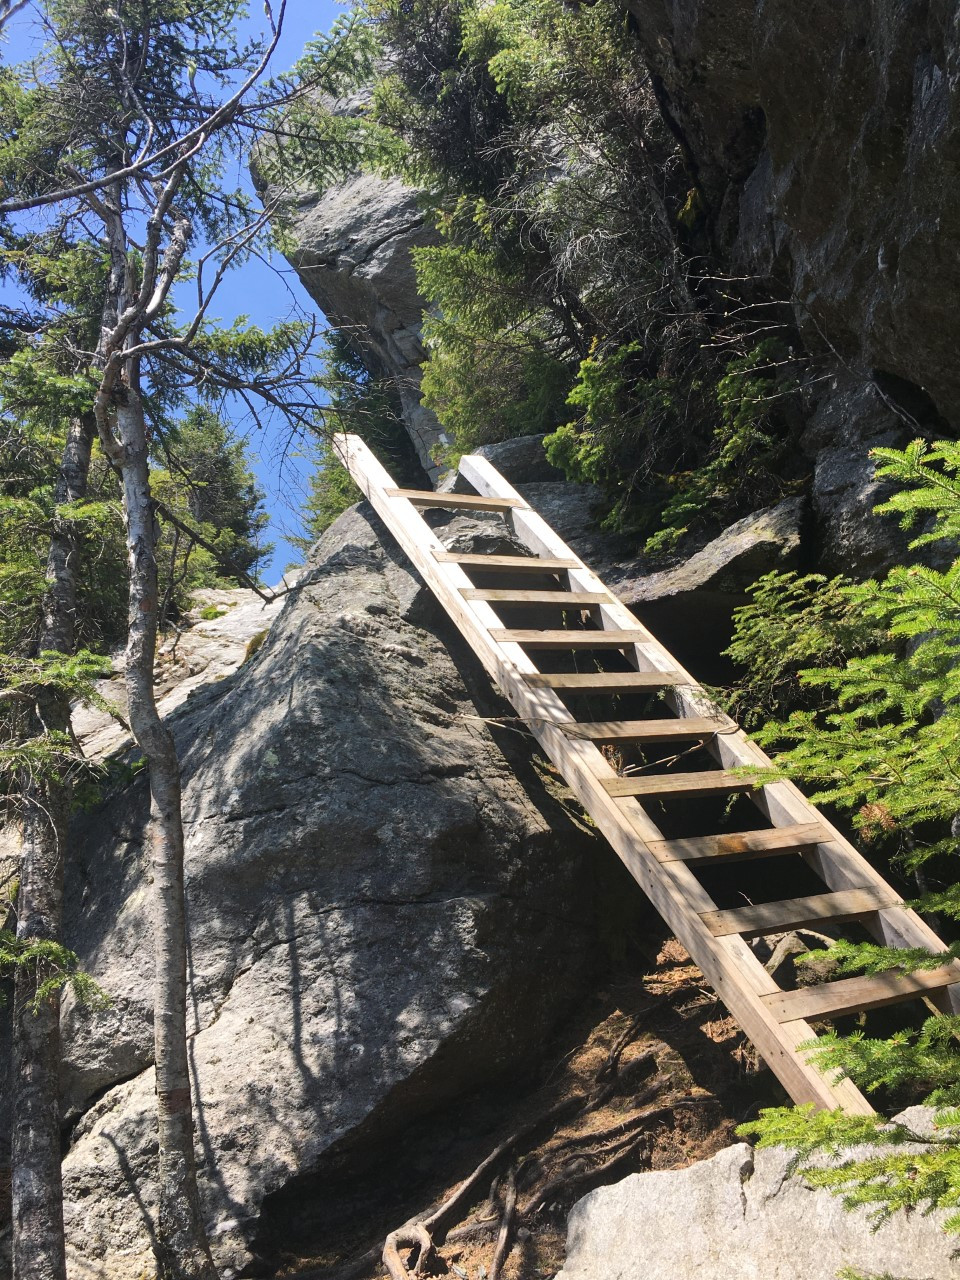 One of the many ladders that descend the southbound route of Mansfield